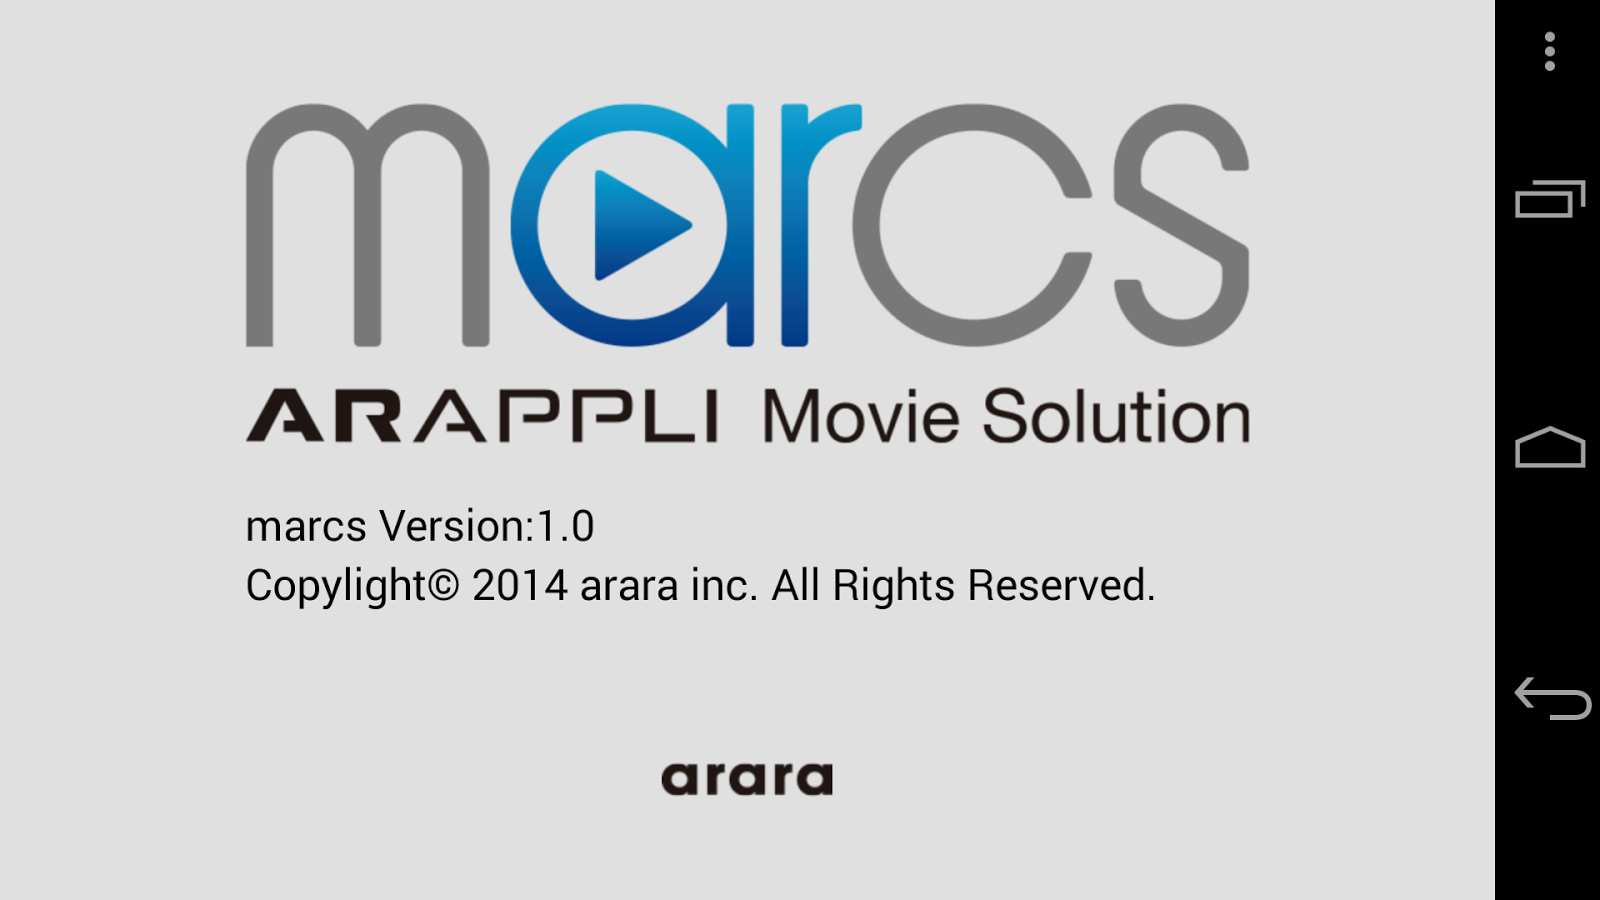 marcs - ARAPPLI Movie Solution- スクリーンショット